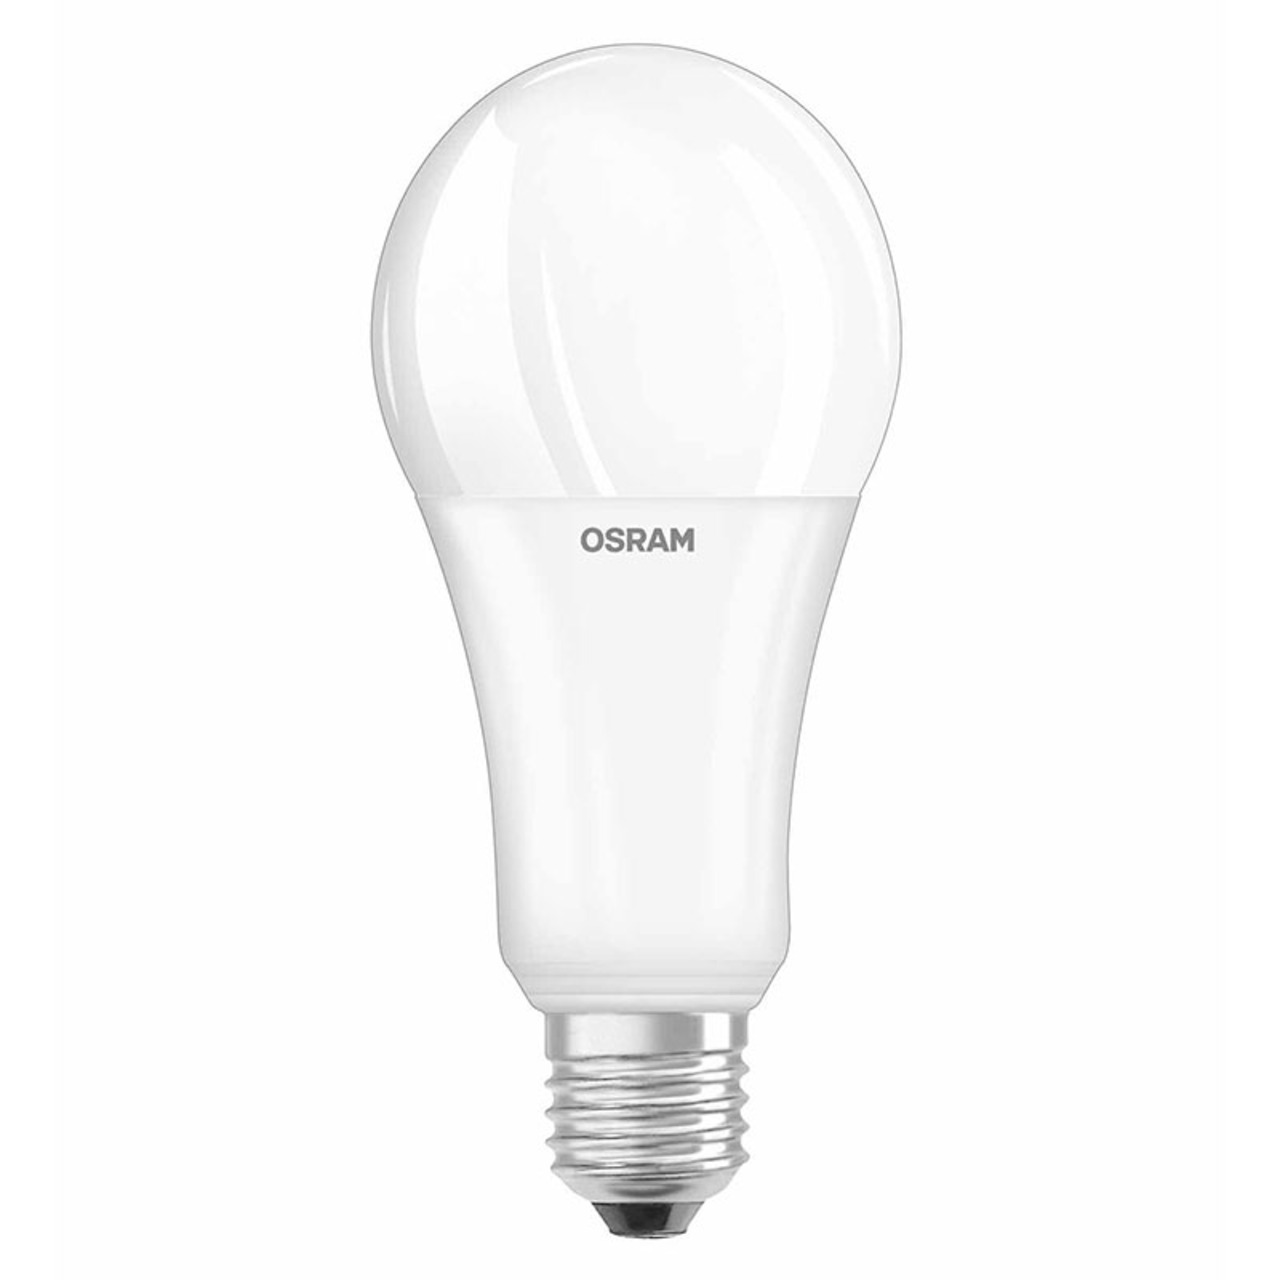 OSRAM LED SUPERSTAR 21-W-LED-Lampe E27- matt- dimmbar -2452 lm-